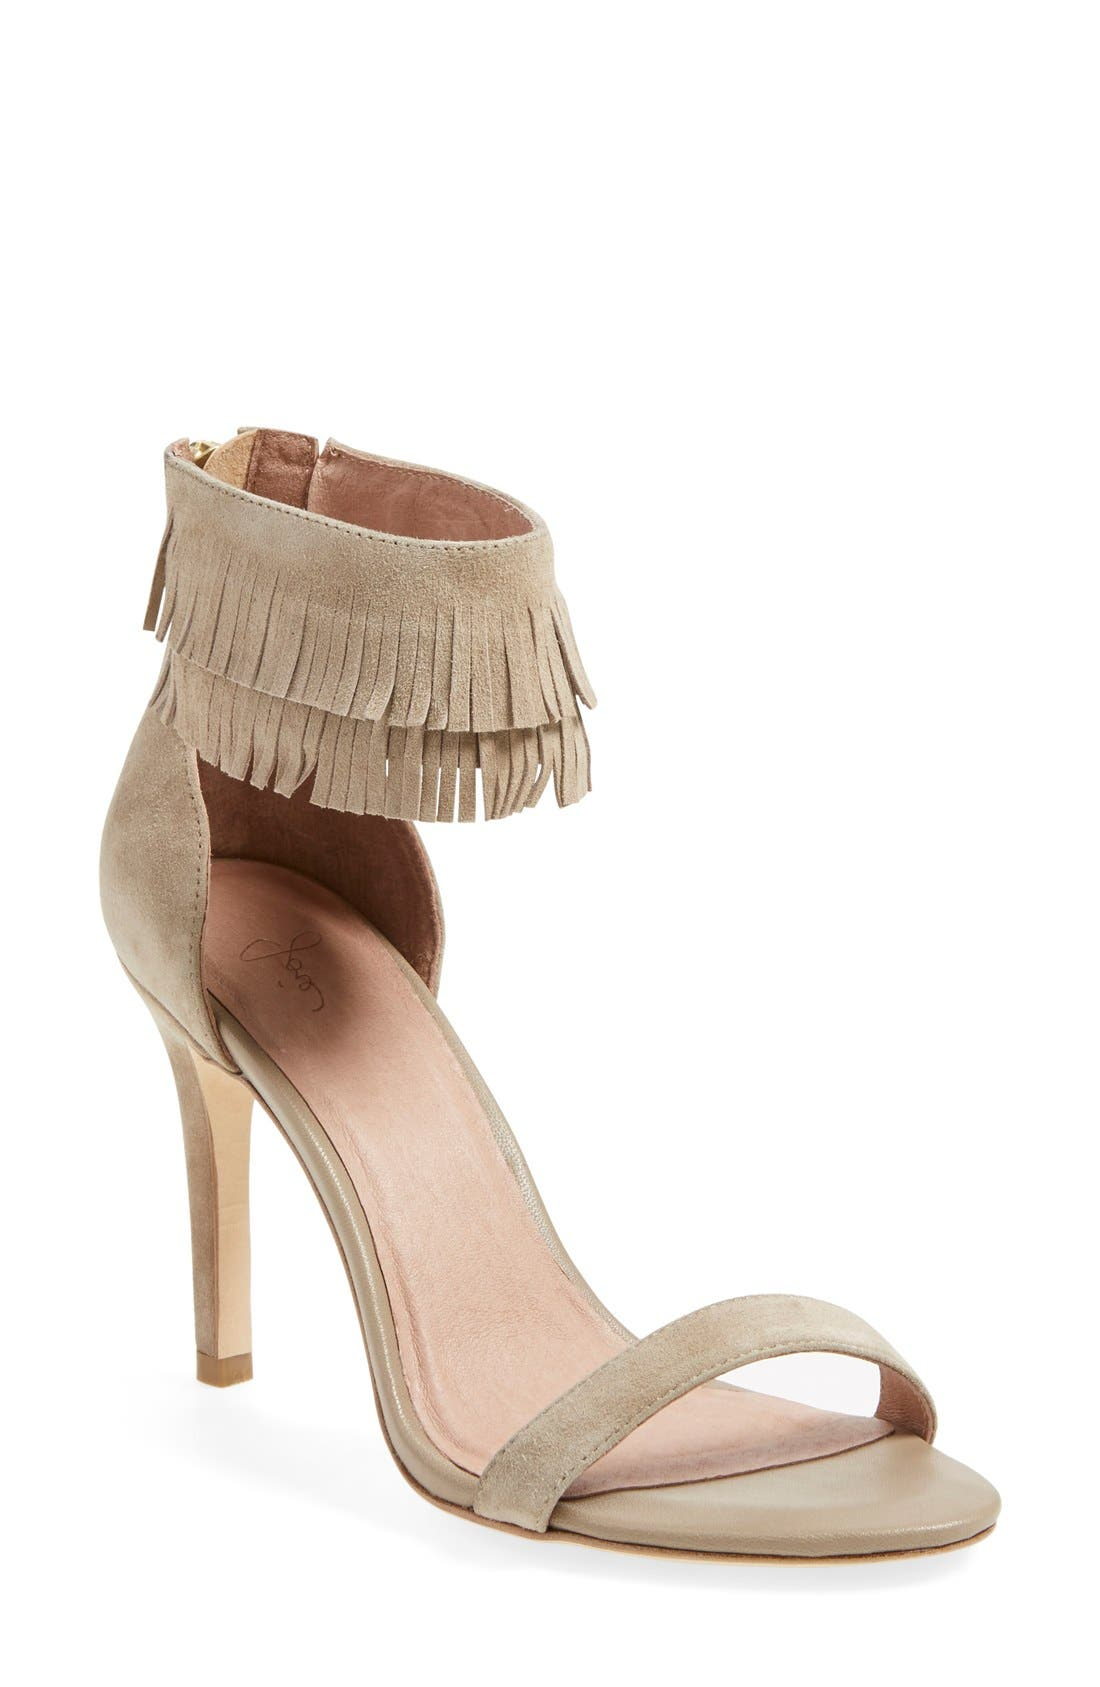 Alternate Image 1 Selected - Joie 'Alek' Fringe Ankle Strap Sandal (Women)